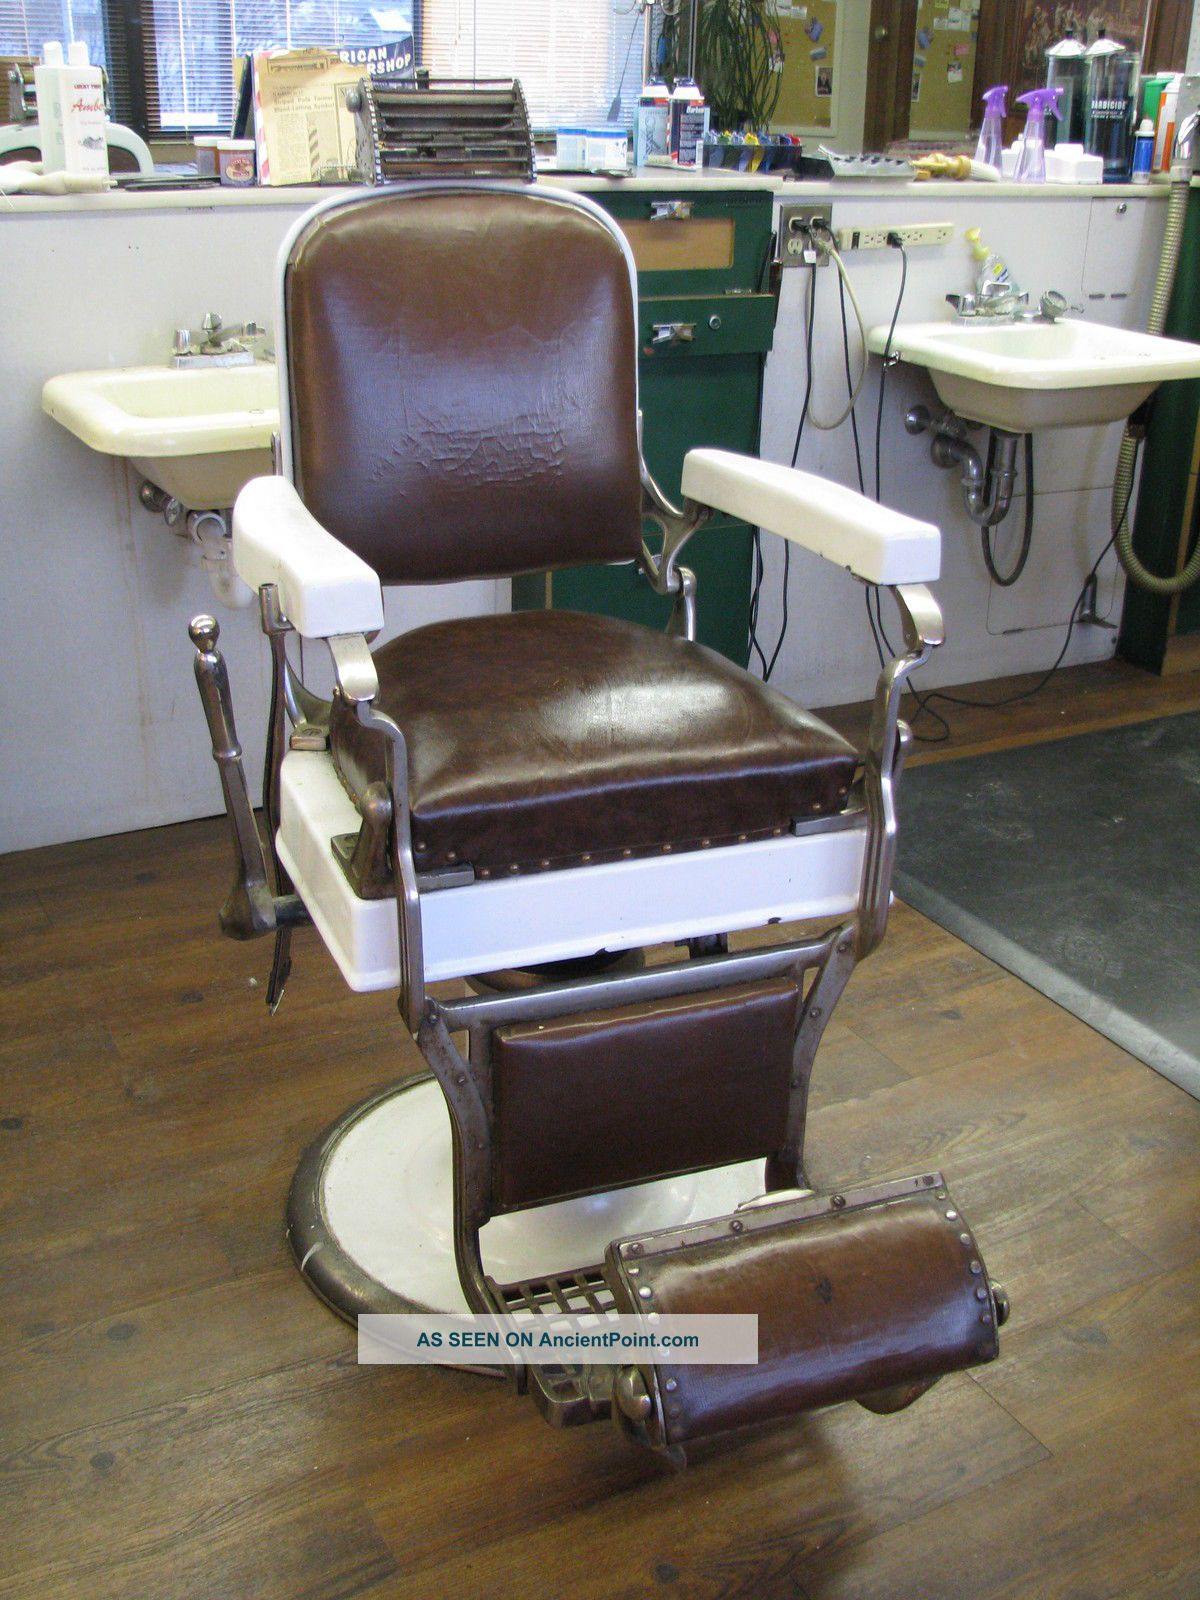 Antique barber chairs koken - Antique Barber Chairs Koken 43